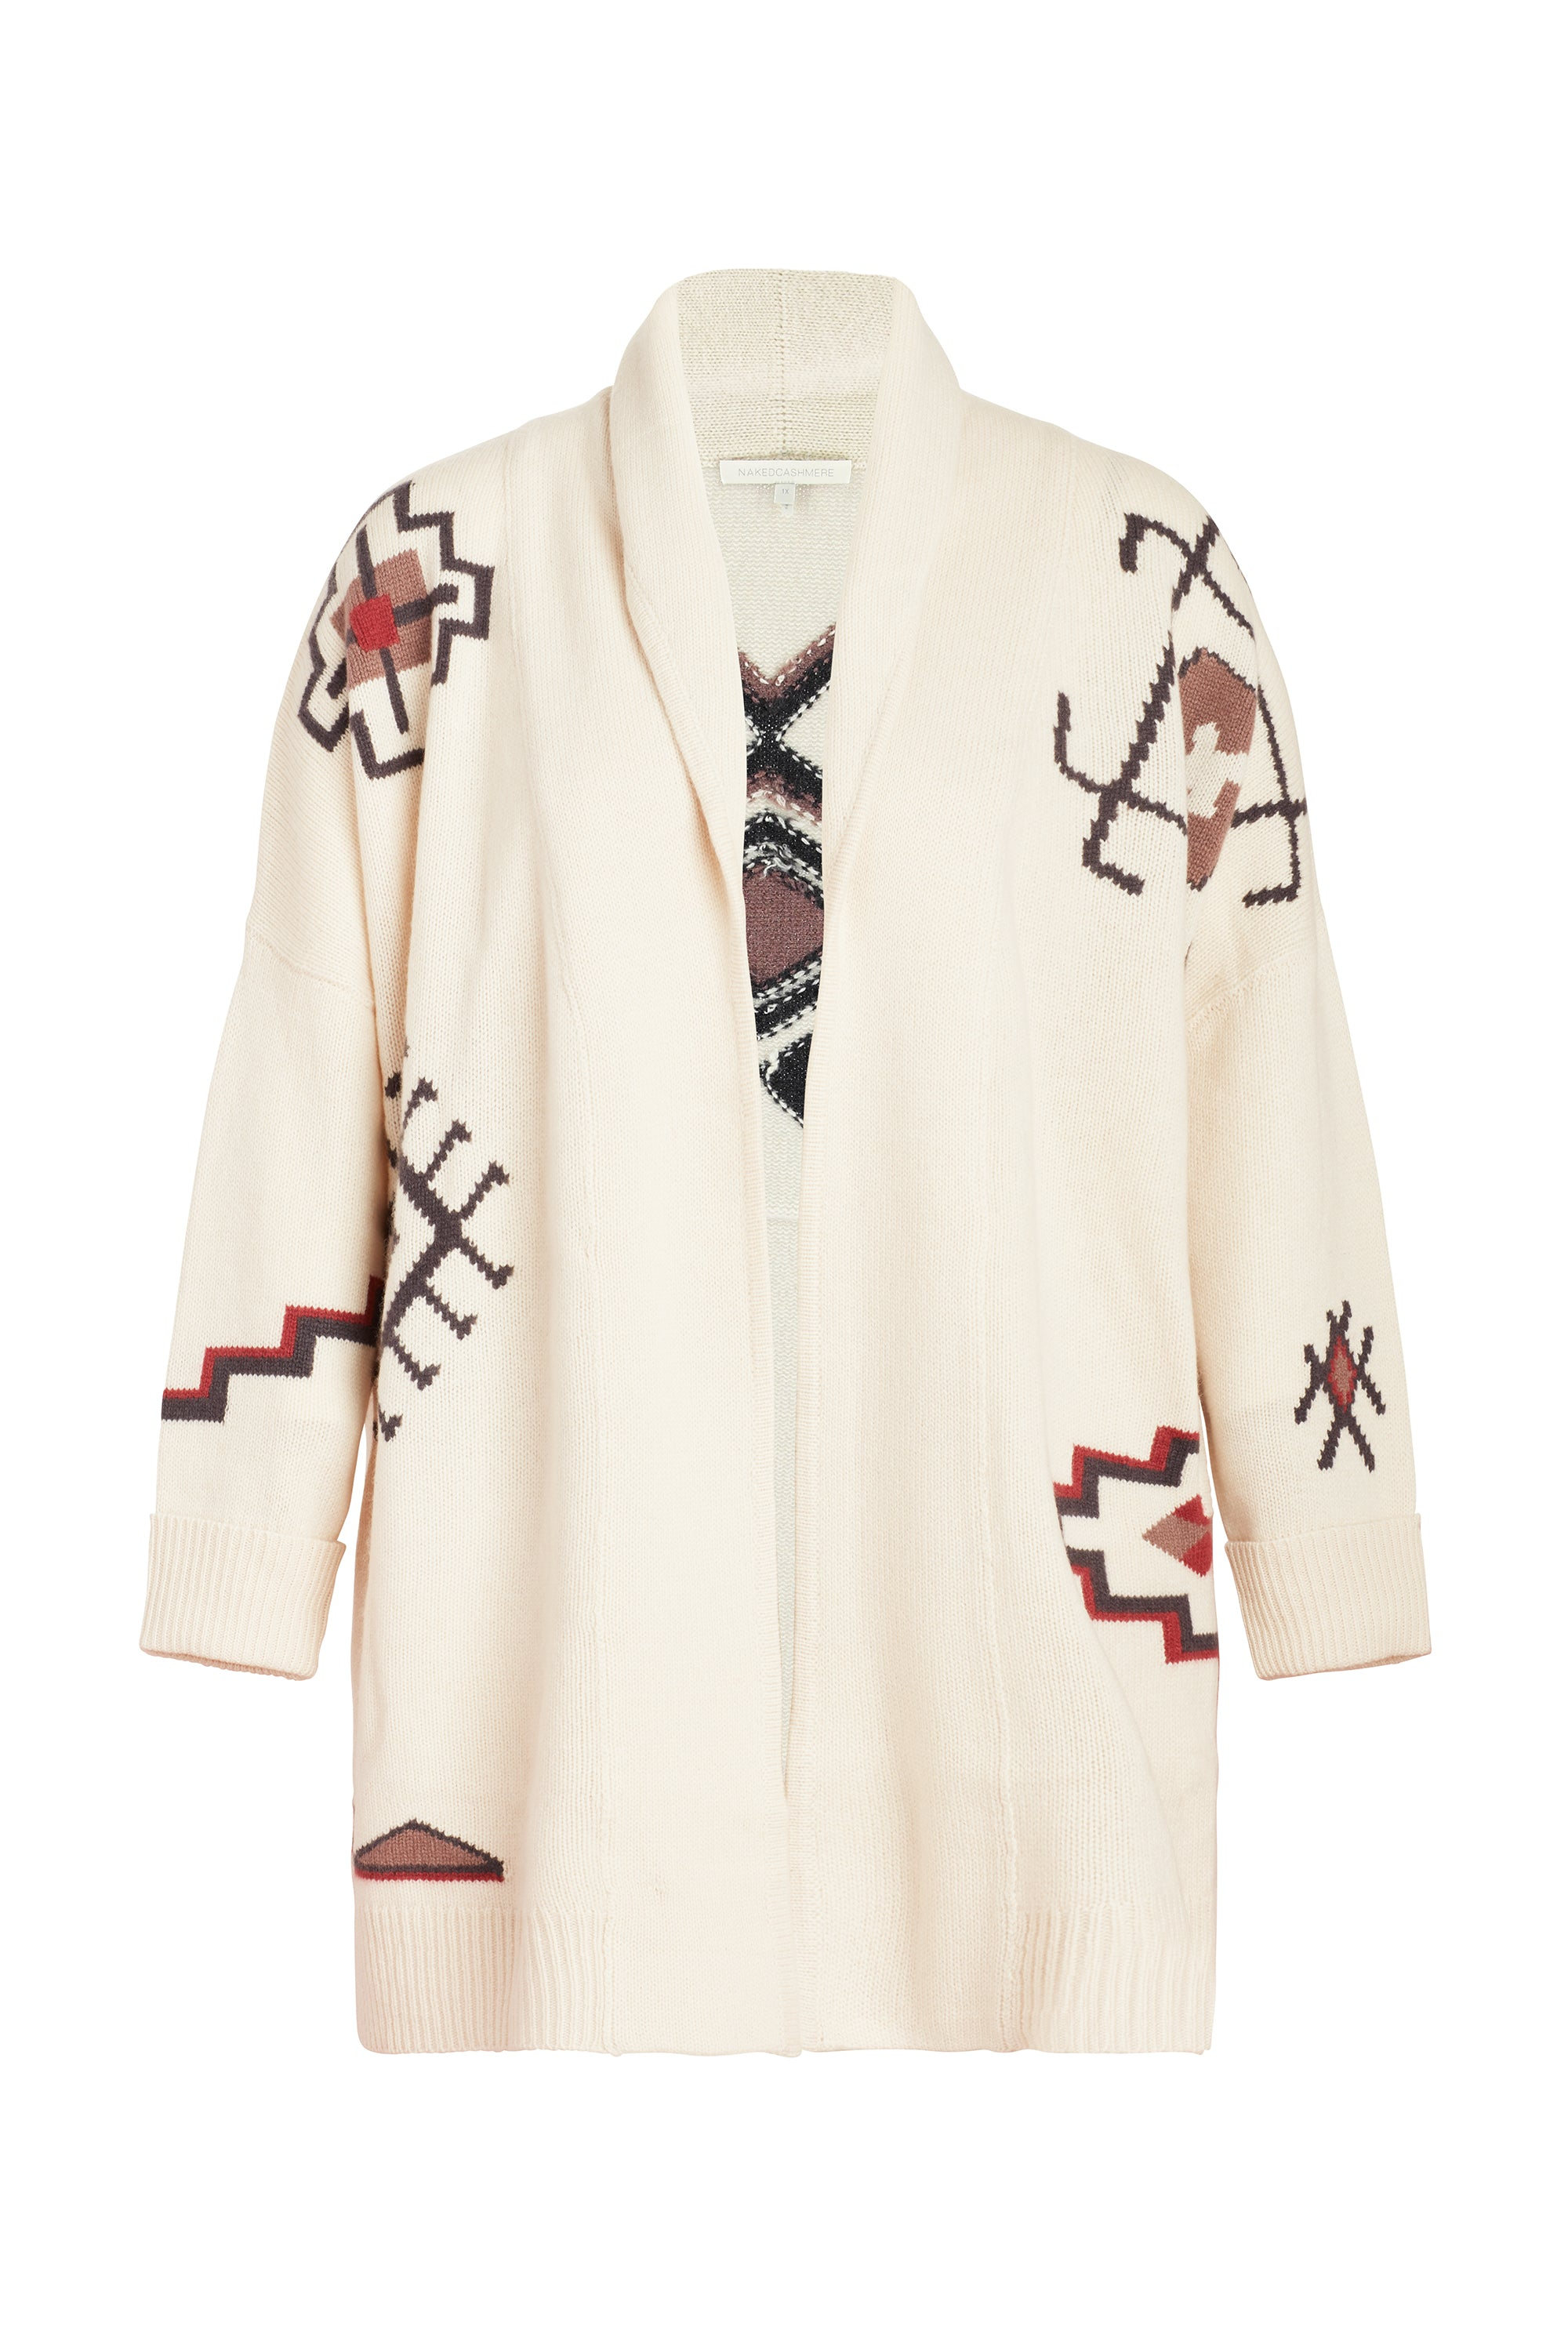 Naked Cashmere Maxwell Duster sweater